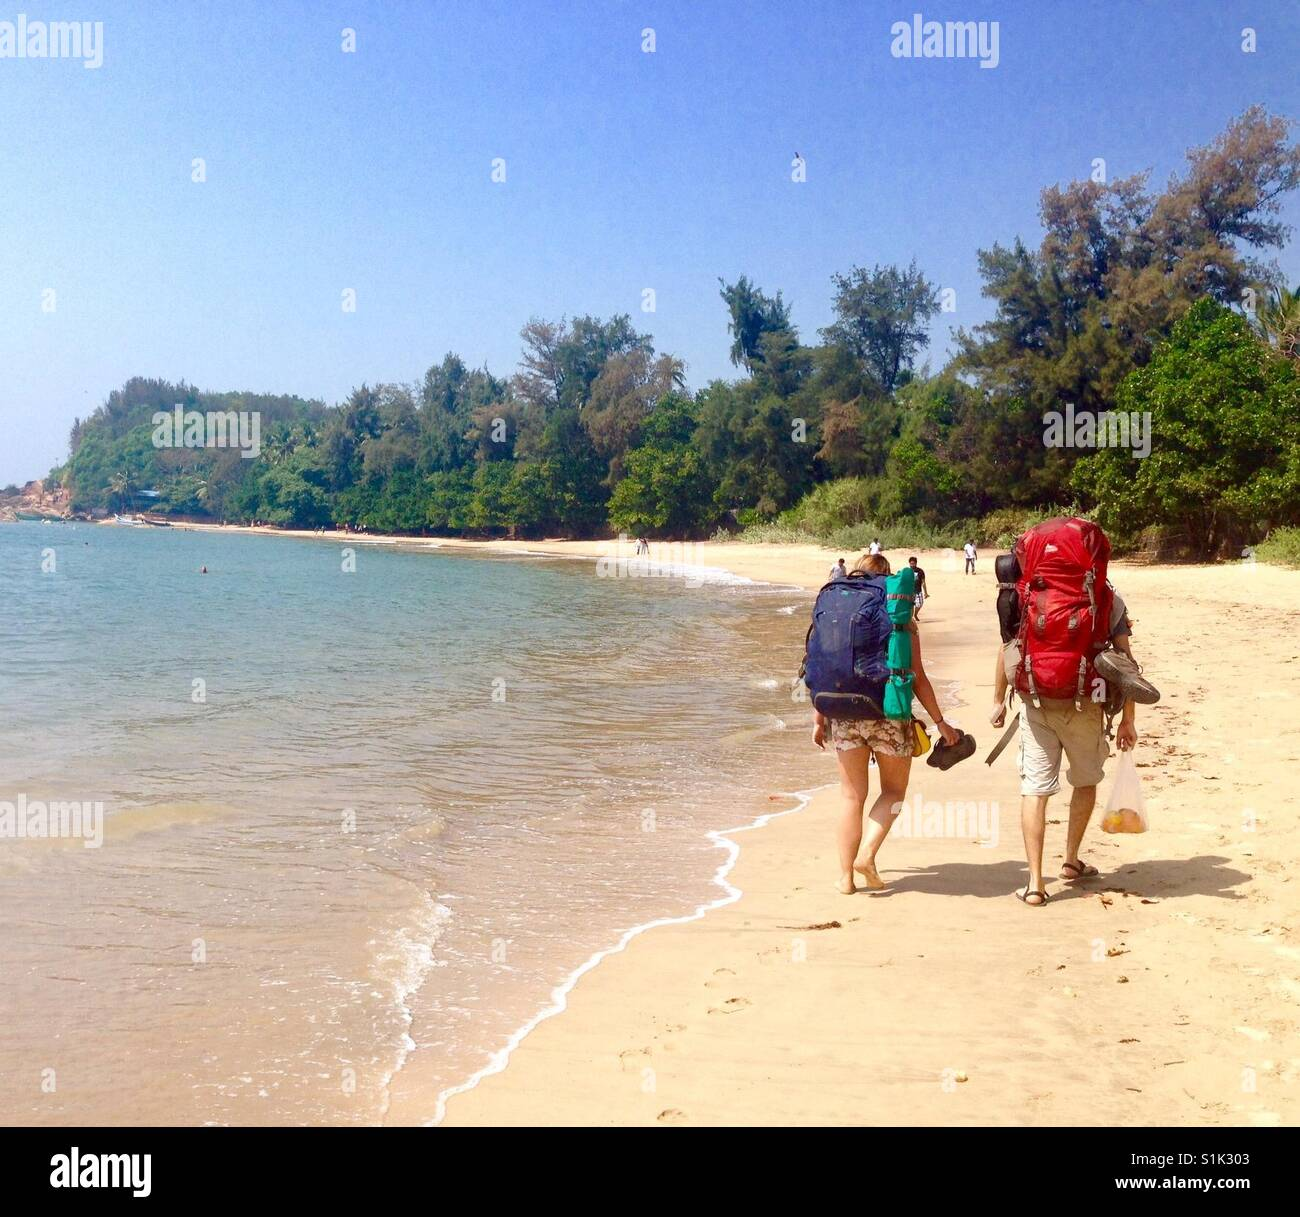 Backpackers making a move in Gokarna, India - Stock Image